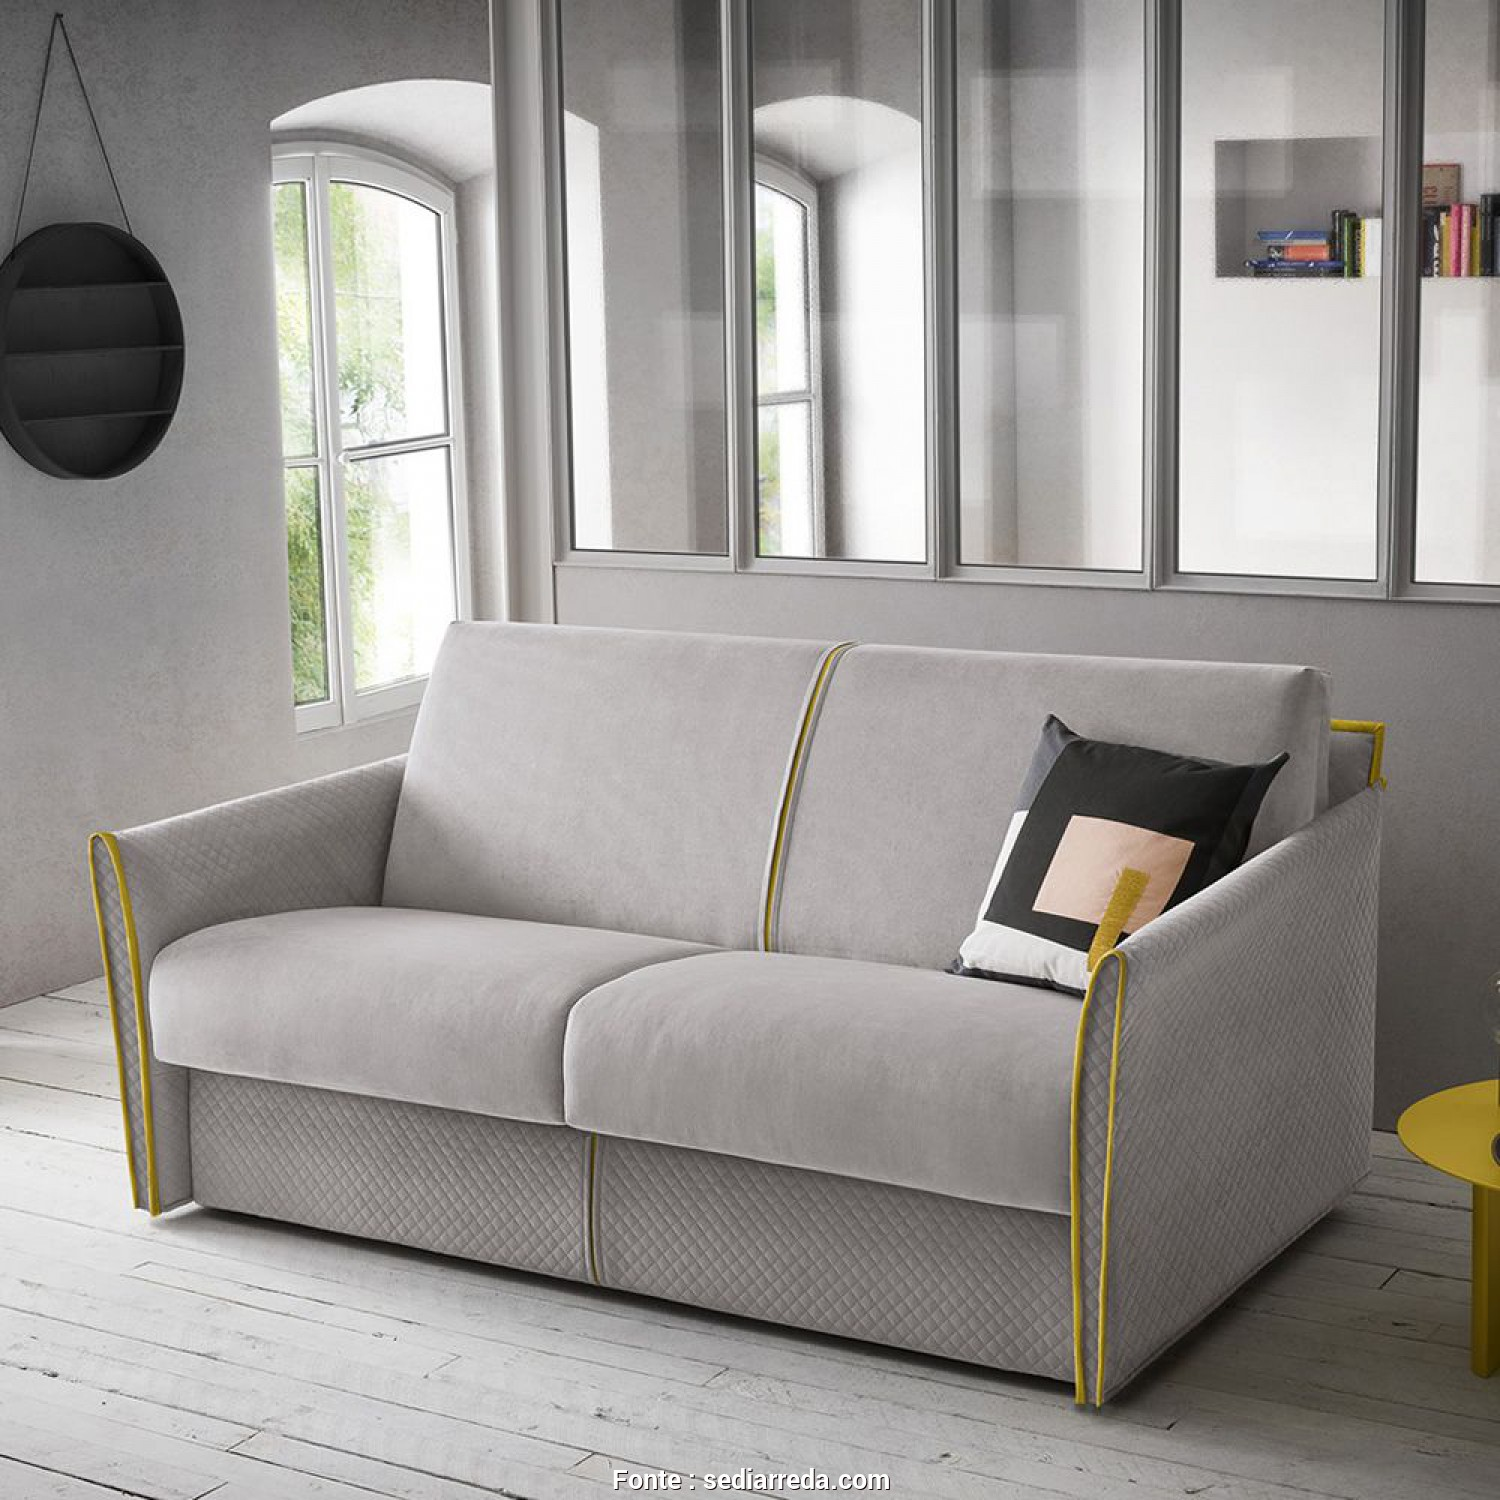 Divano Letto Jolly, Maestoso Jolly, Seater Sofa Bed, Totally Removable Covering, Available